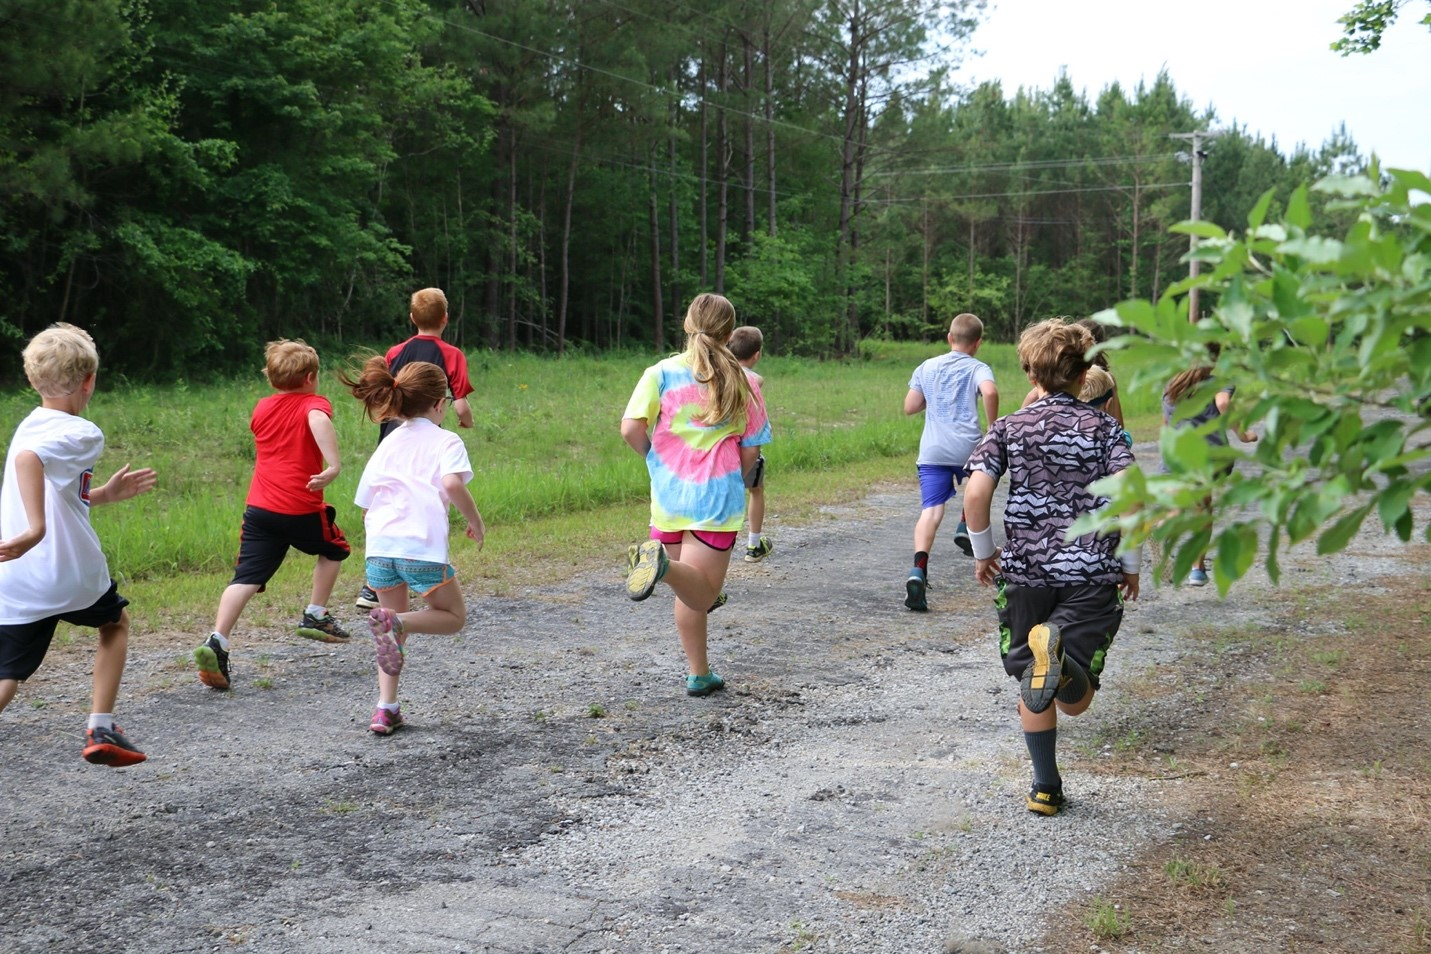 Children running outside